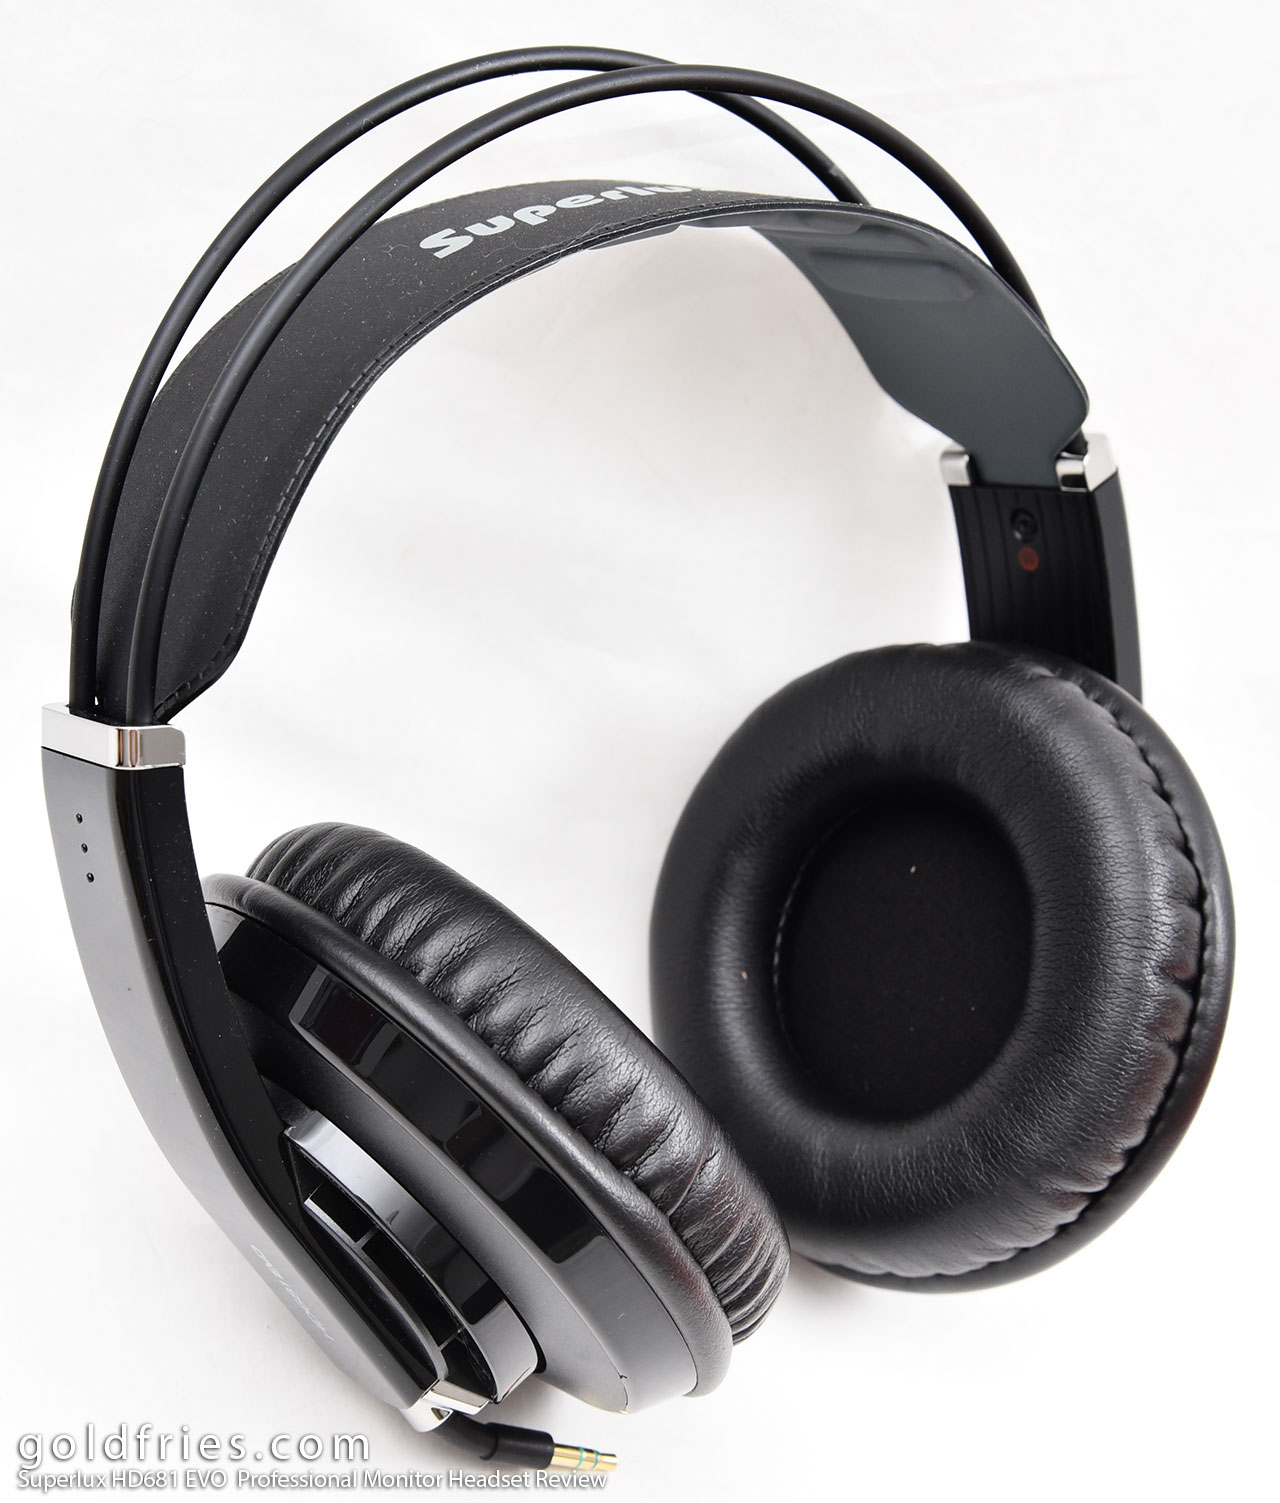 Superlux HD681 EVO Professional Monitor Headset Review